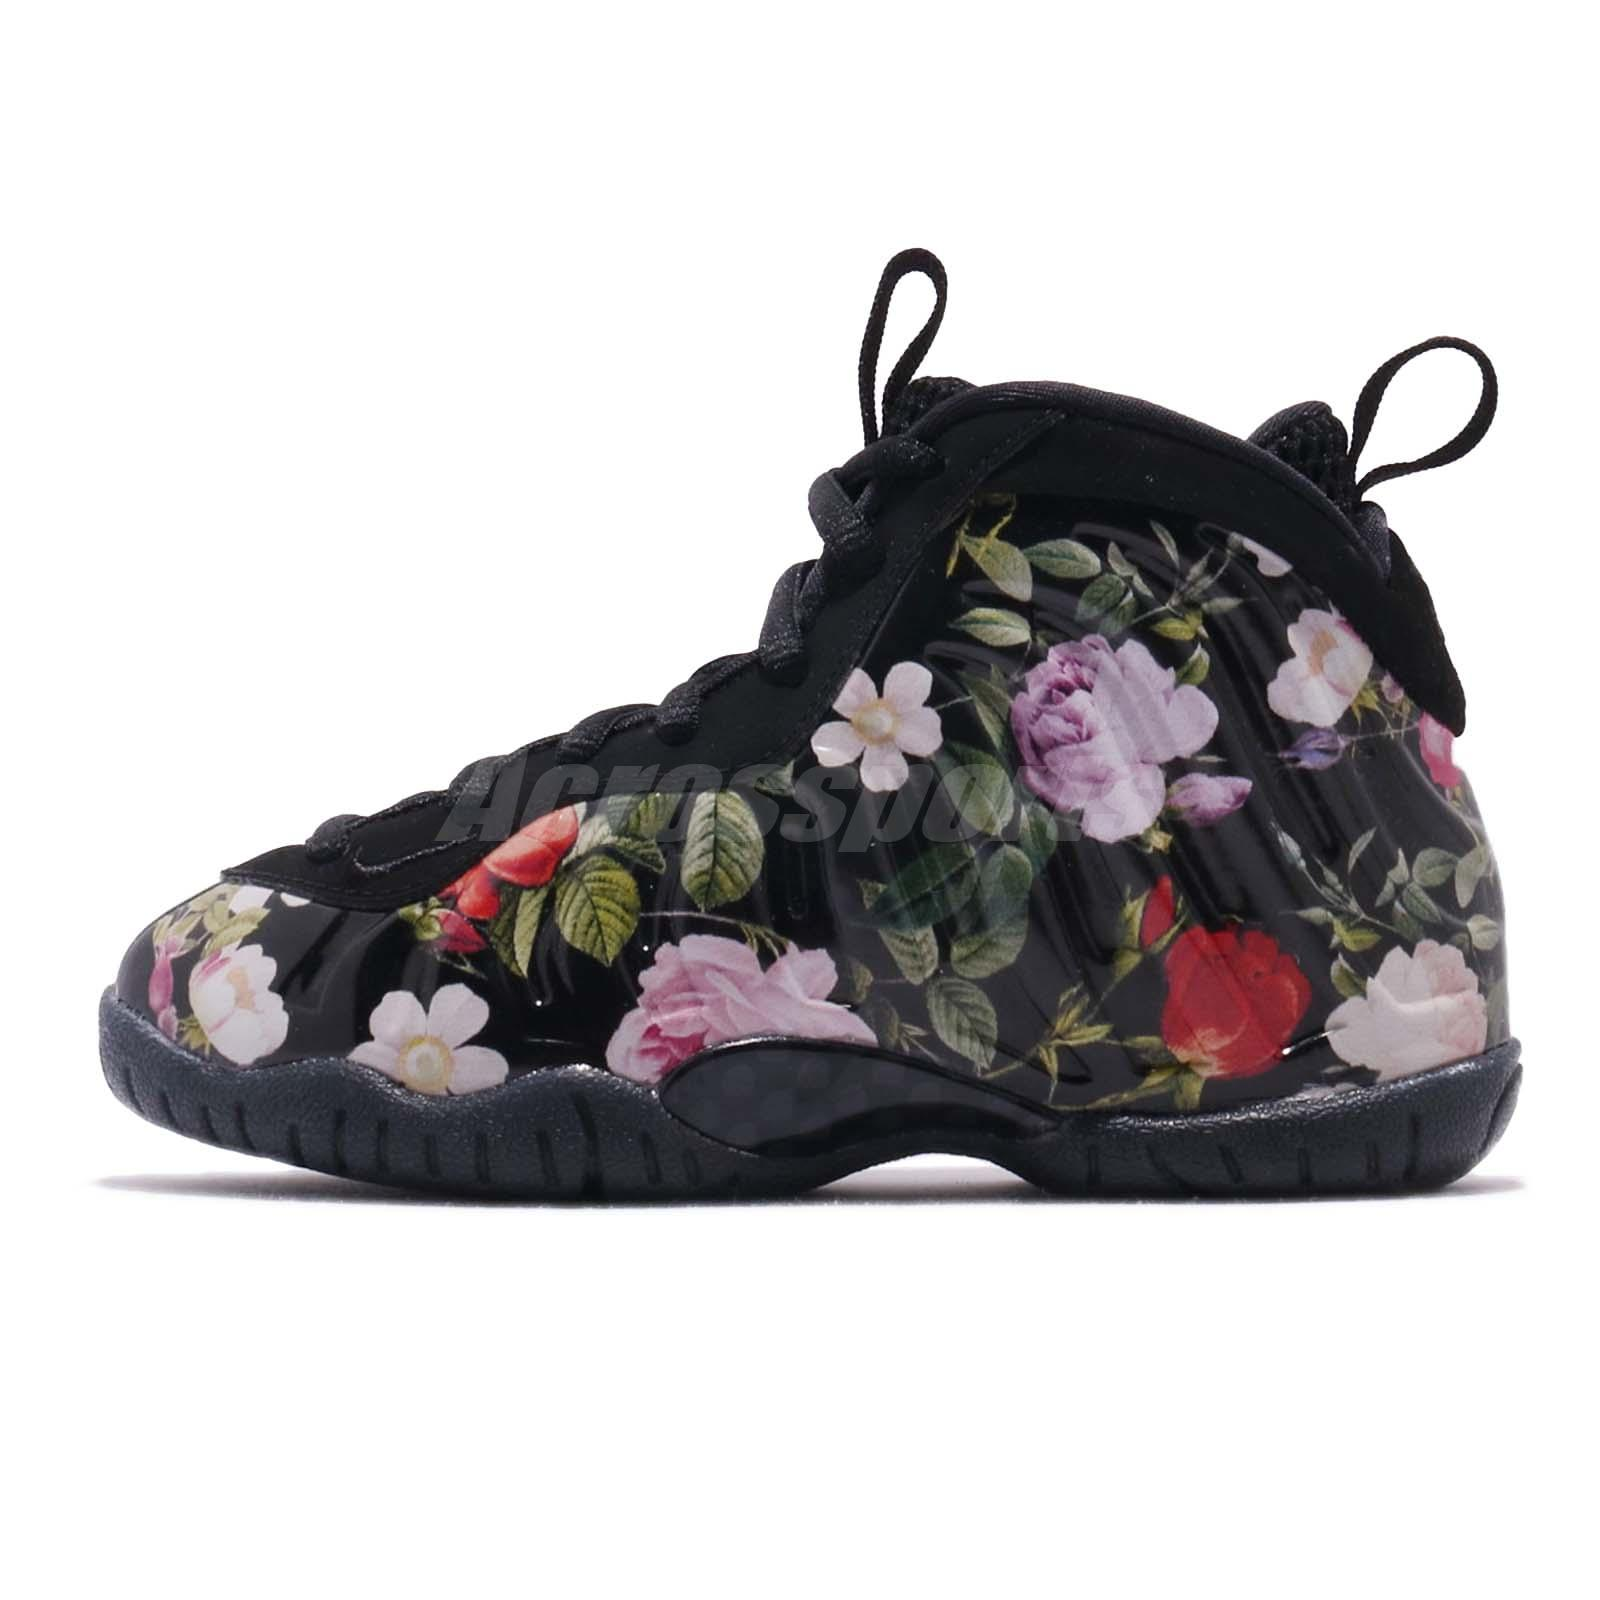 bf4ab4e99e1e1 Nike Little Posite One Prm PS Foamposite Floral Kid Preschool Shoes AT8249- 001